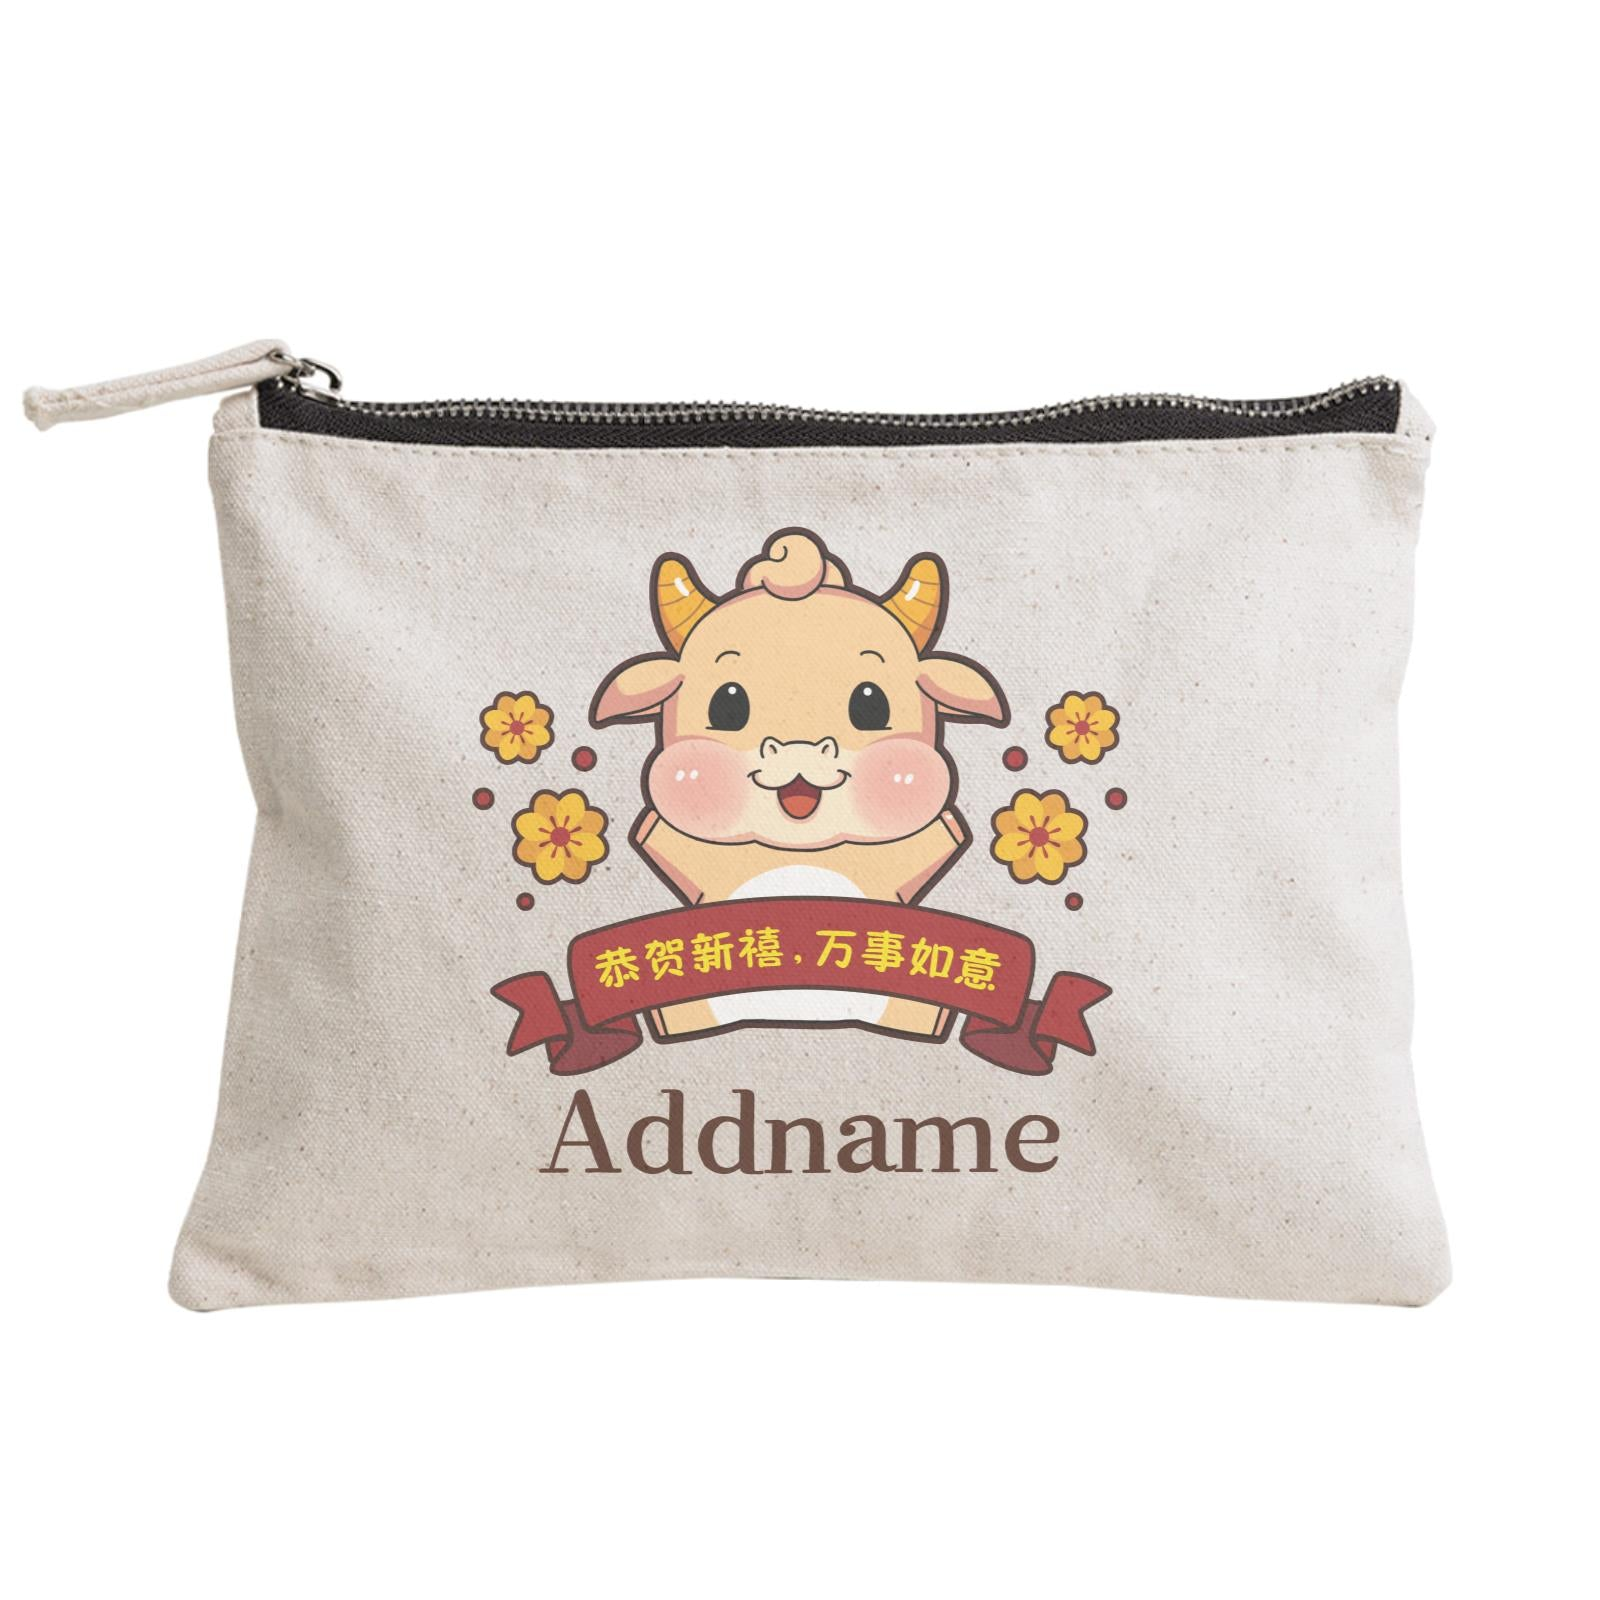 [CNY 2021] Golden Cow with Chinese New Year Wishes Zipper Pouch